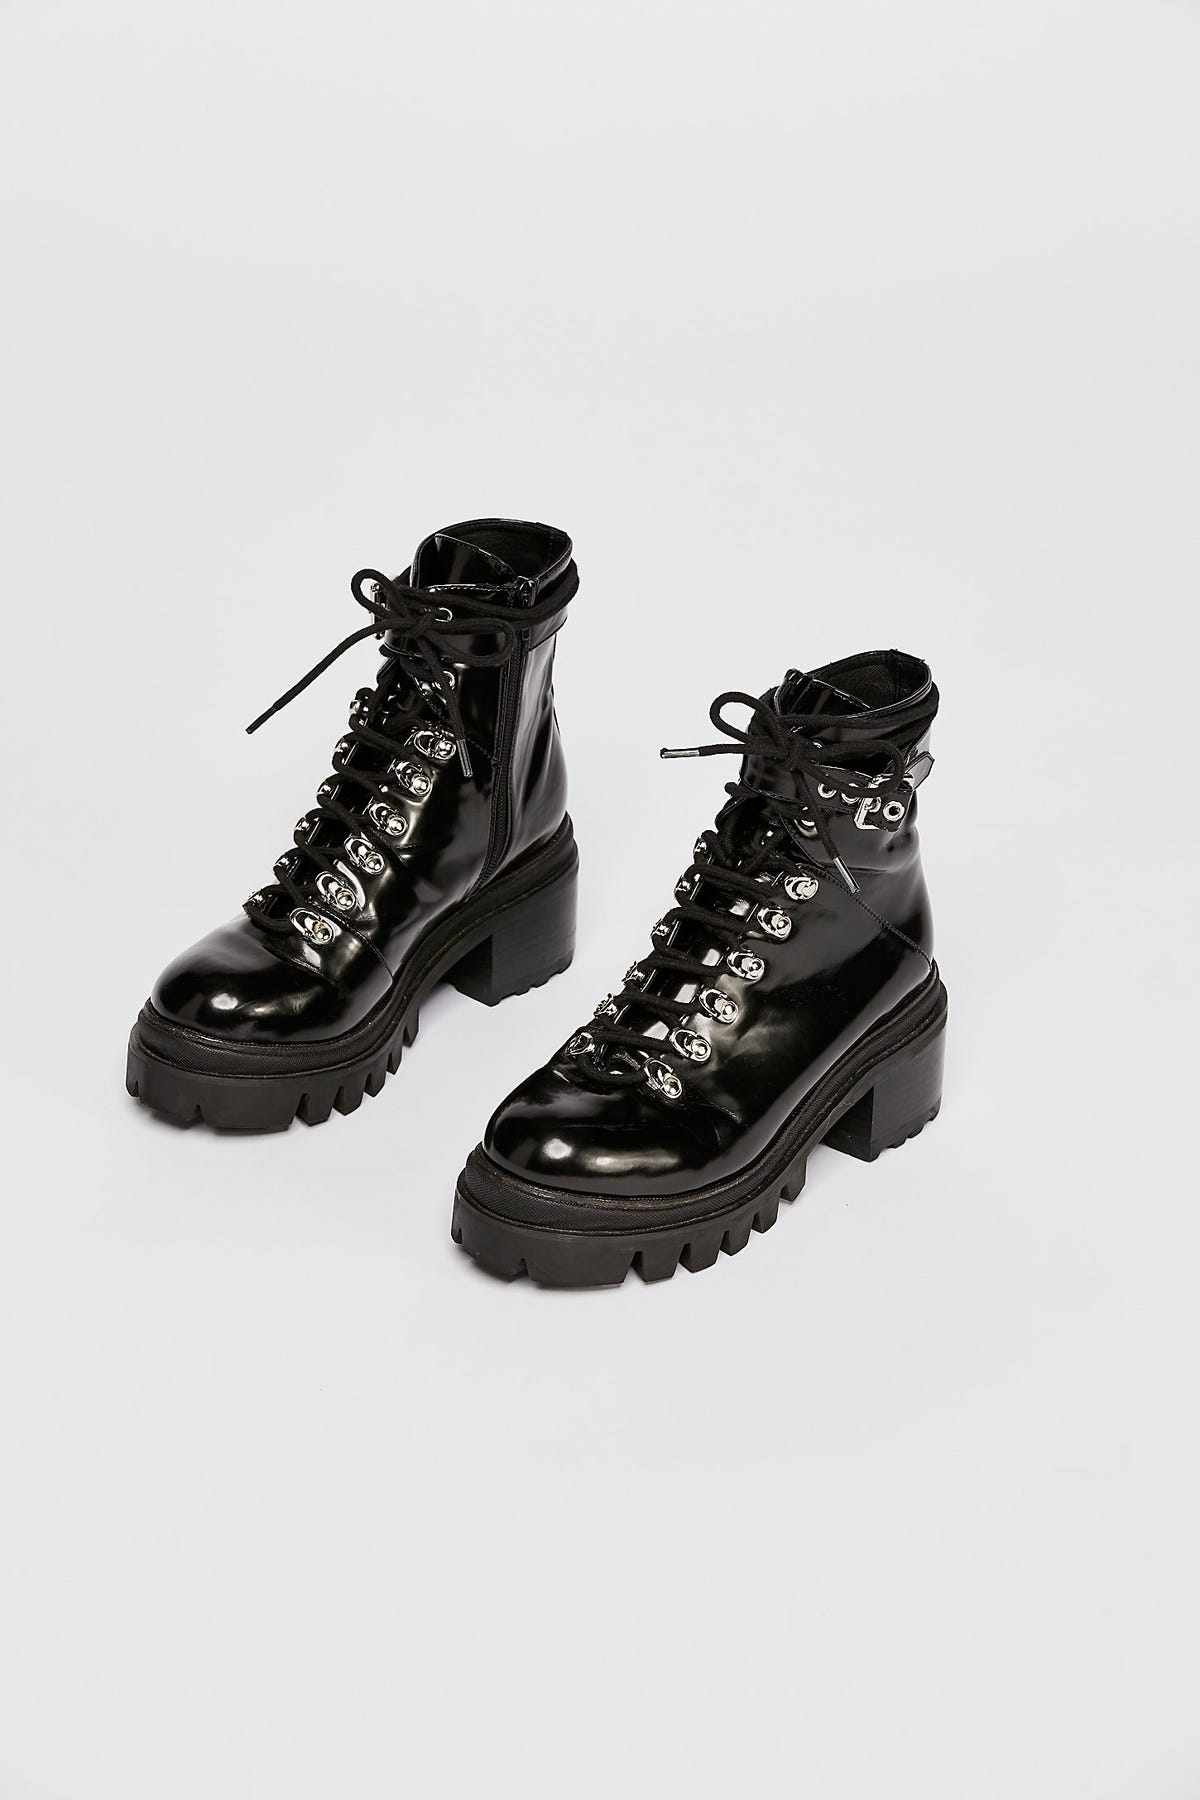 Best Chunky Boots Throughout 2019 Buy Wear To Winter rhQsCtdx